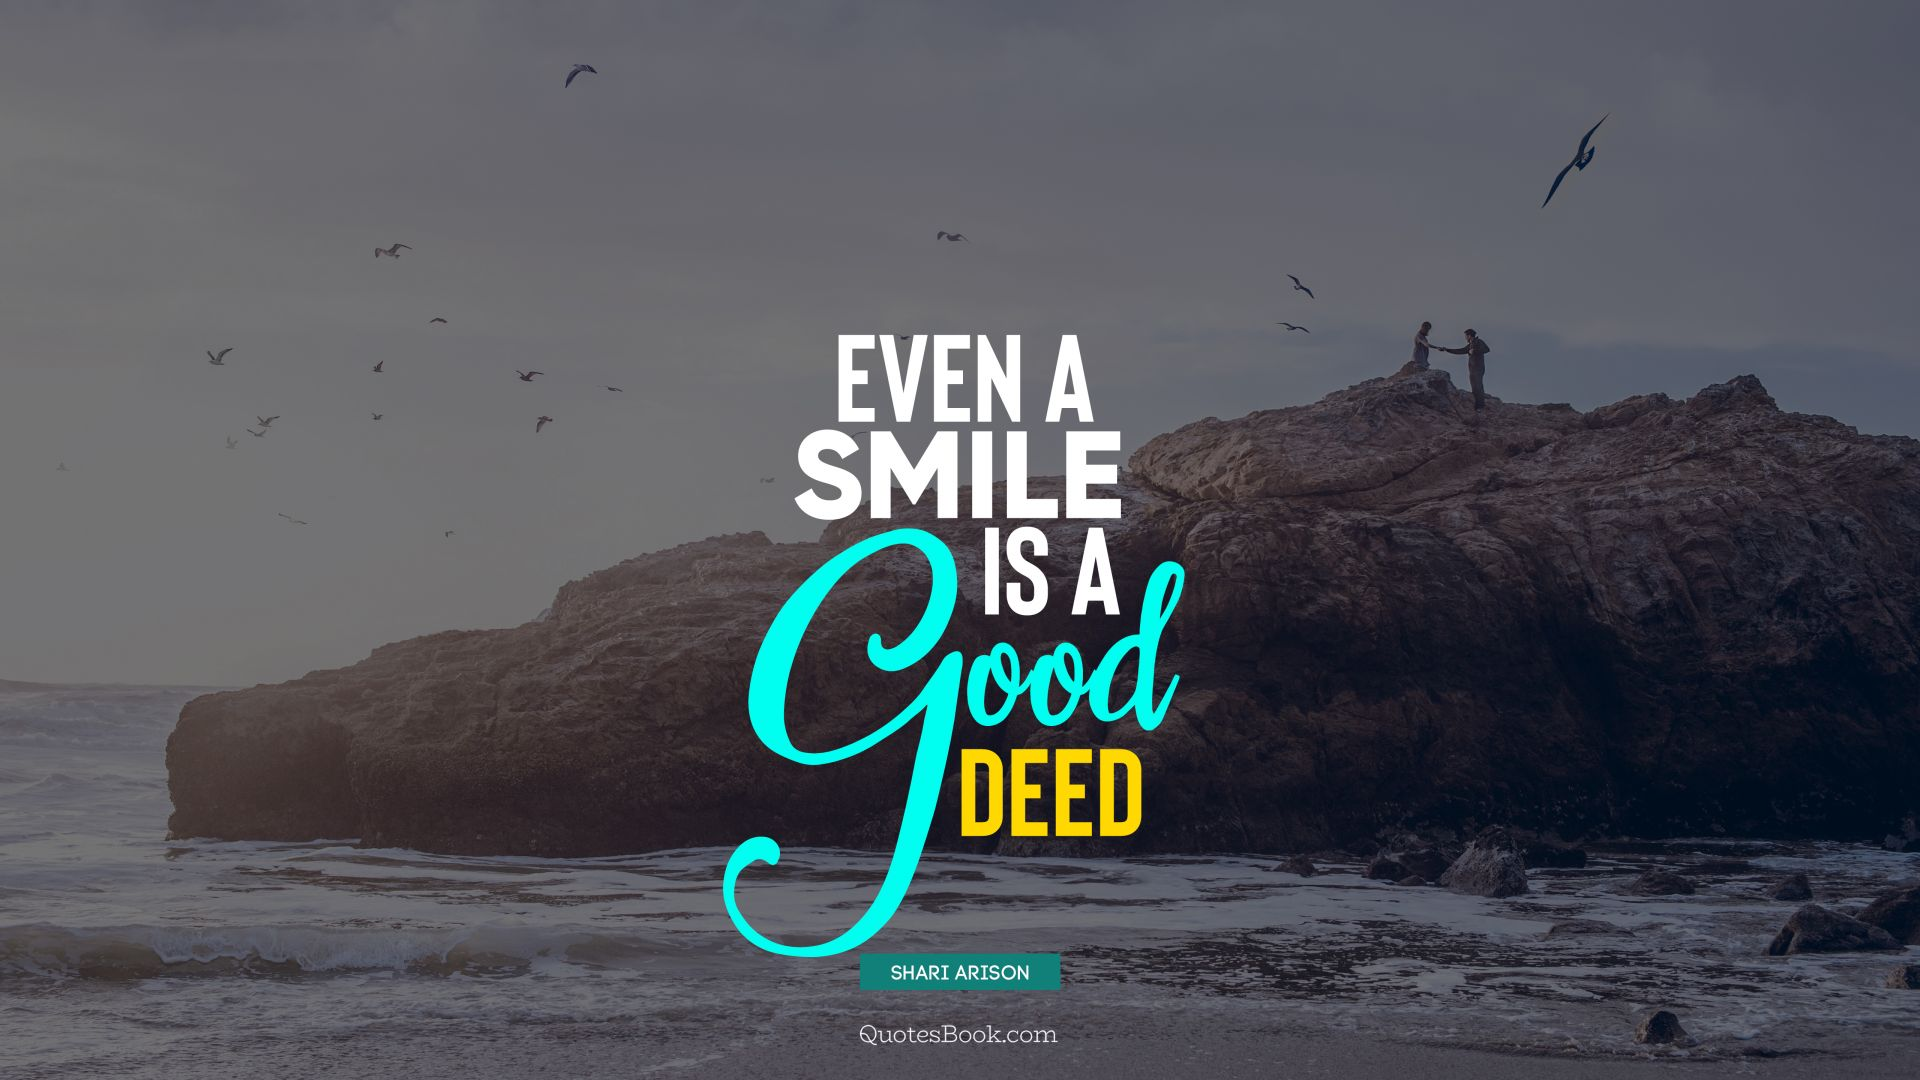 Even a smile is a good deed. - Quote by Shari Arison